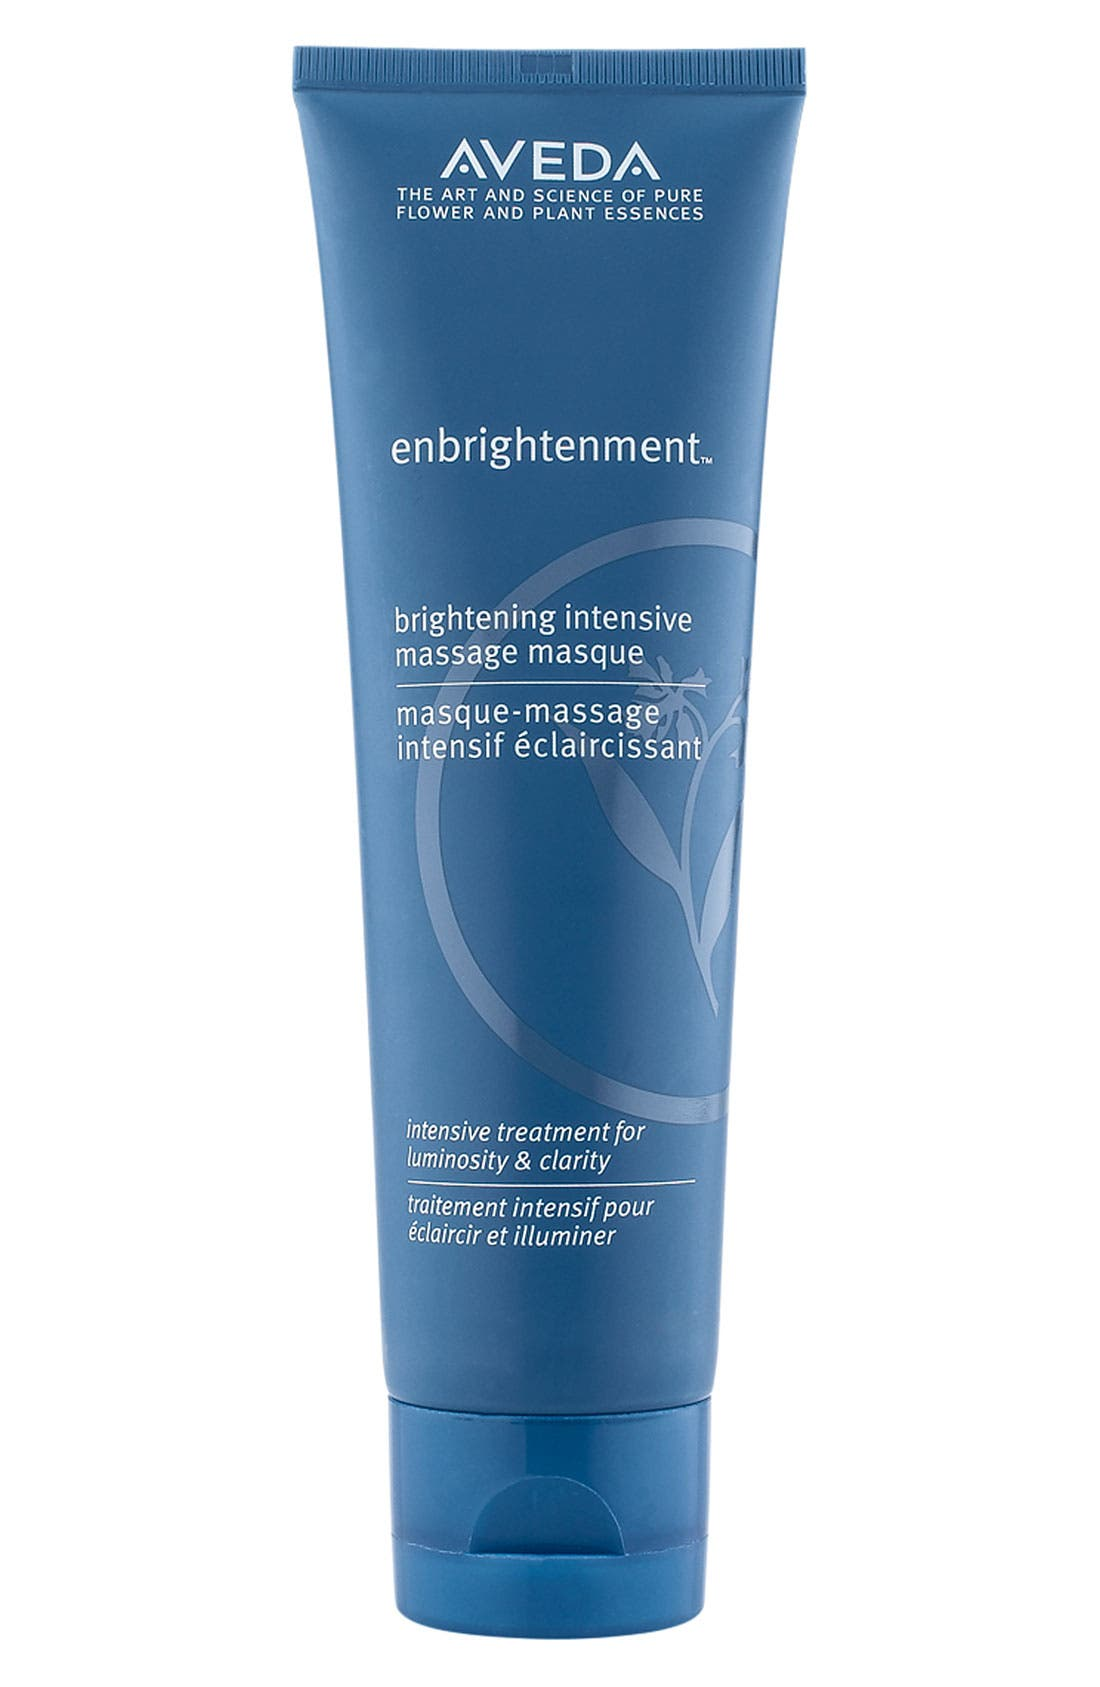 AVEDA,                             'enbrightenment<sup>™</sup>' Brightening Intensive Massage Masque,                             Main thumbnail 1, color,                             000